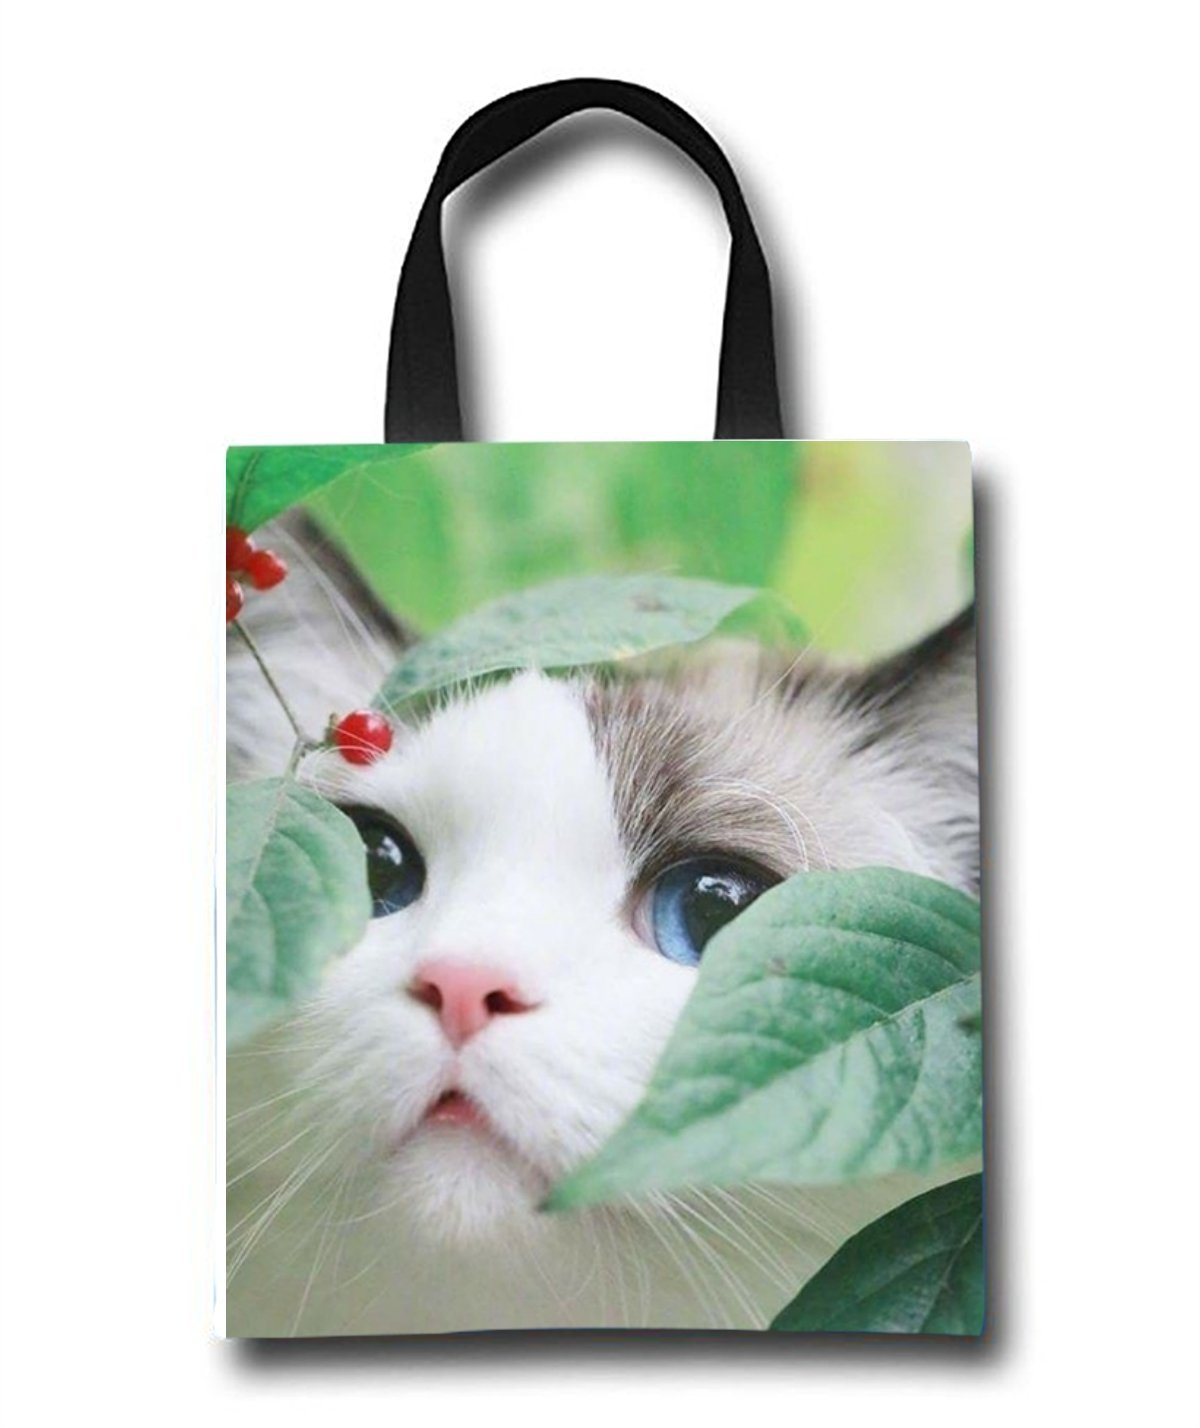 Cute Shorthair Beach Tote Bag - Toy Tote Bag - Large Lightweight Market, Grocery & Picnic